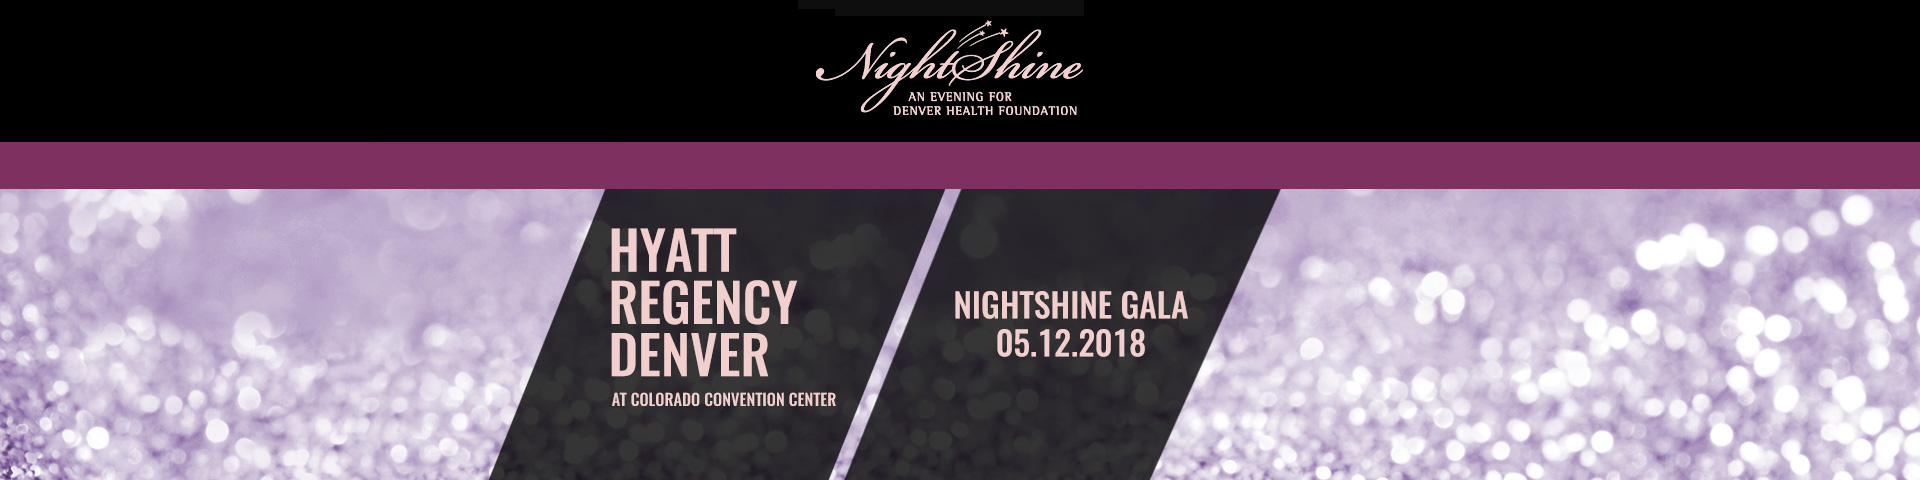 NightShine Gala an evening for Denver Health Foundation